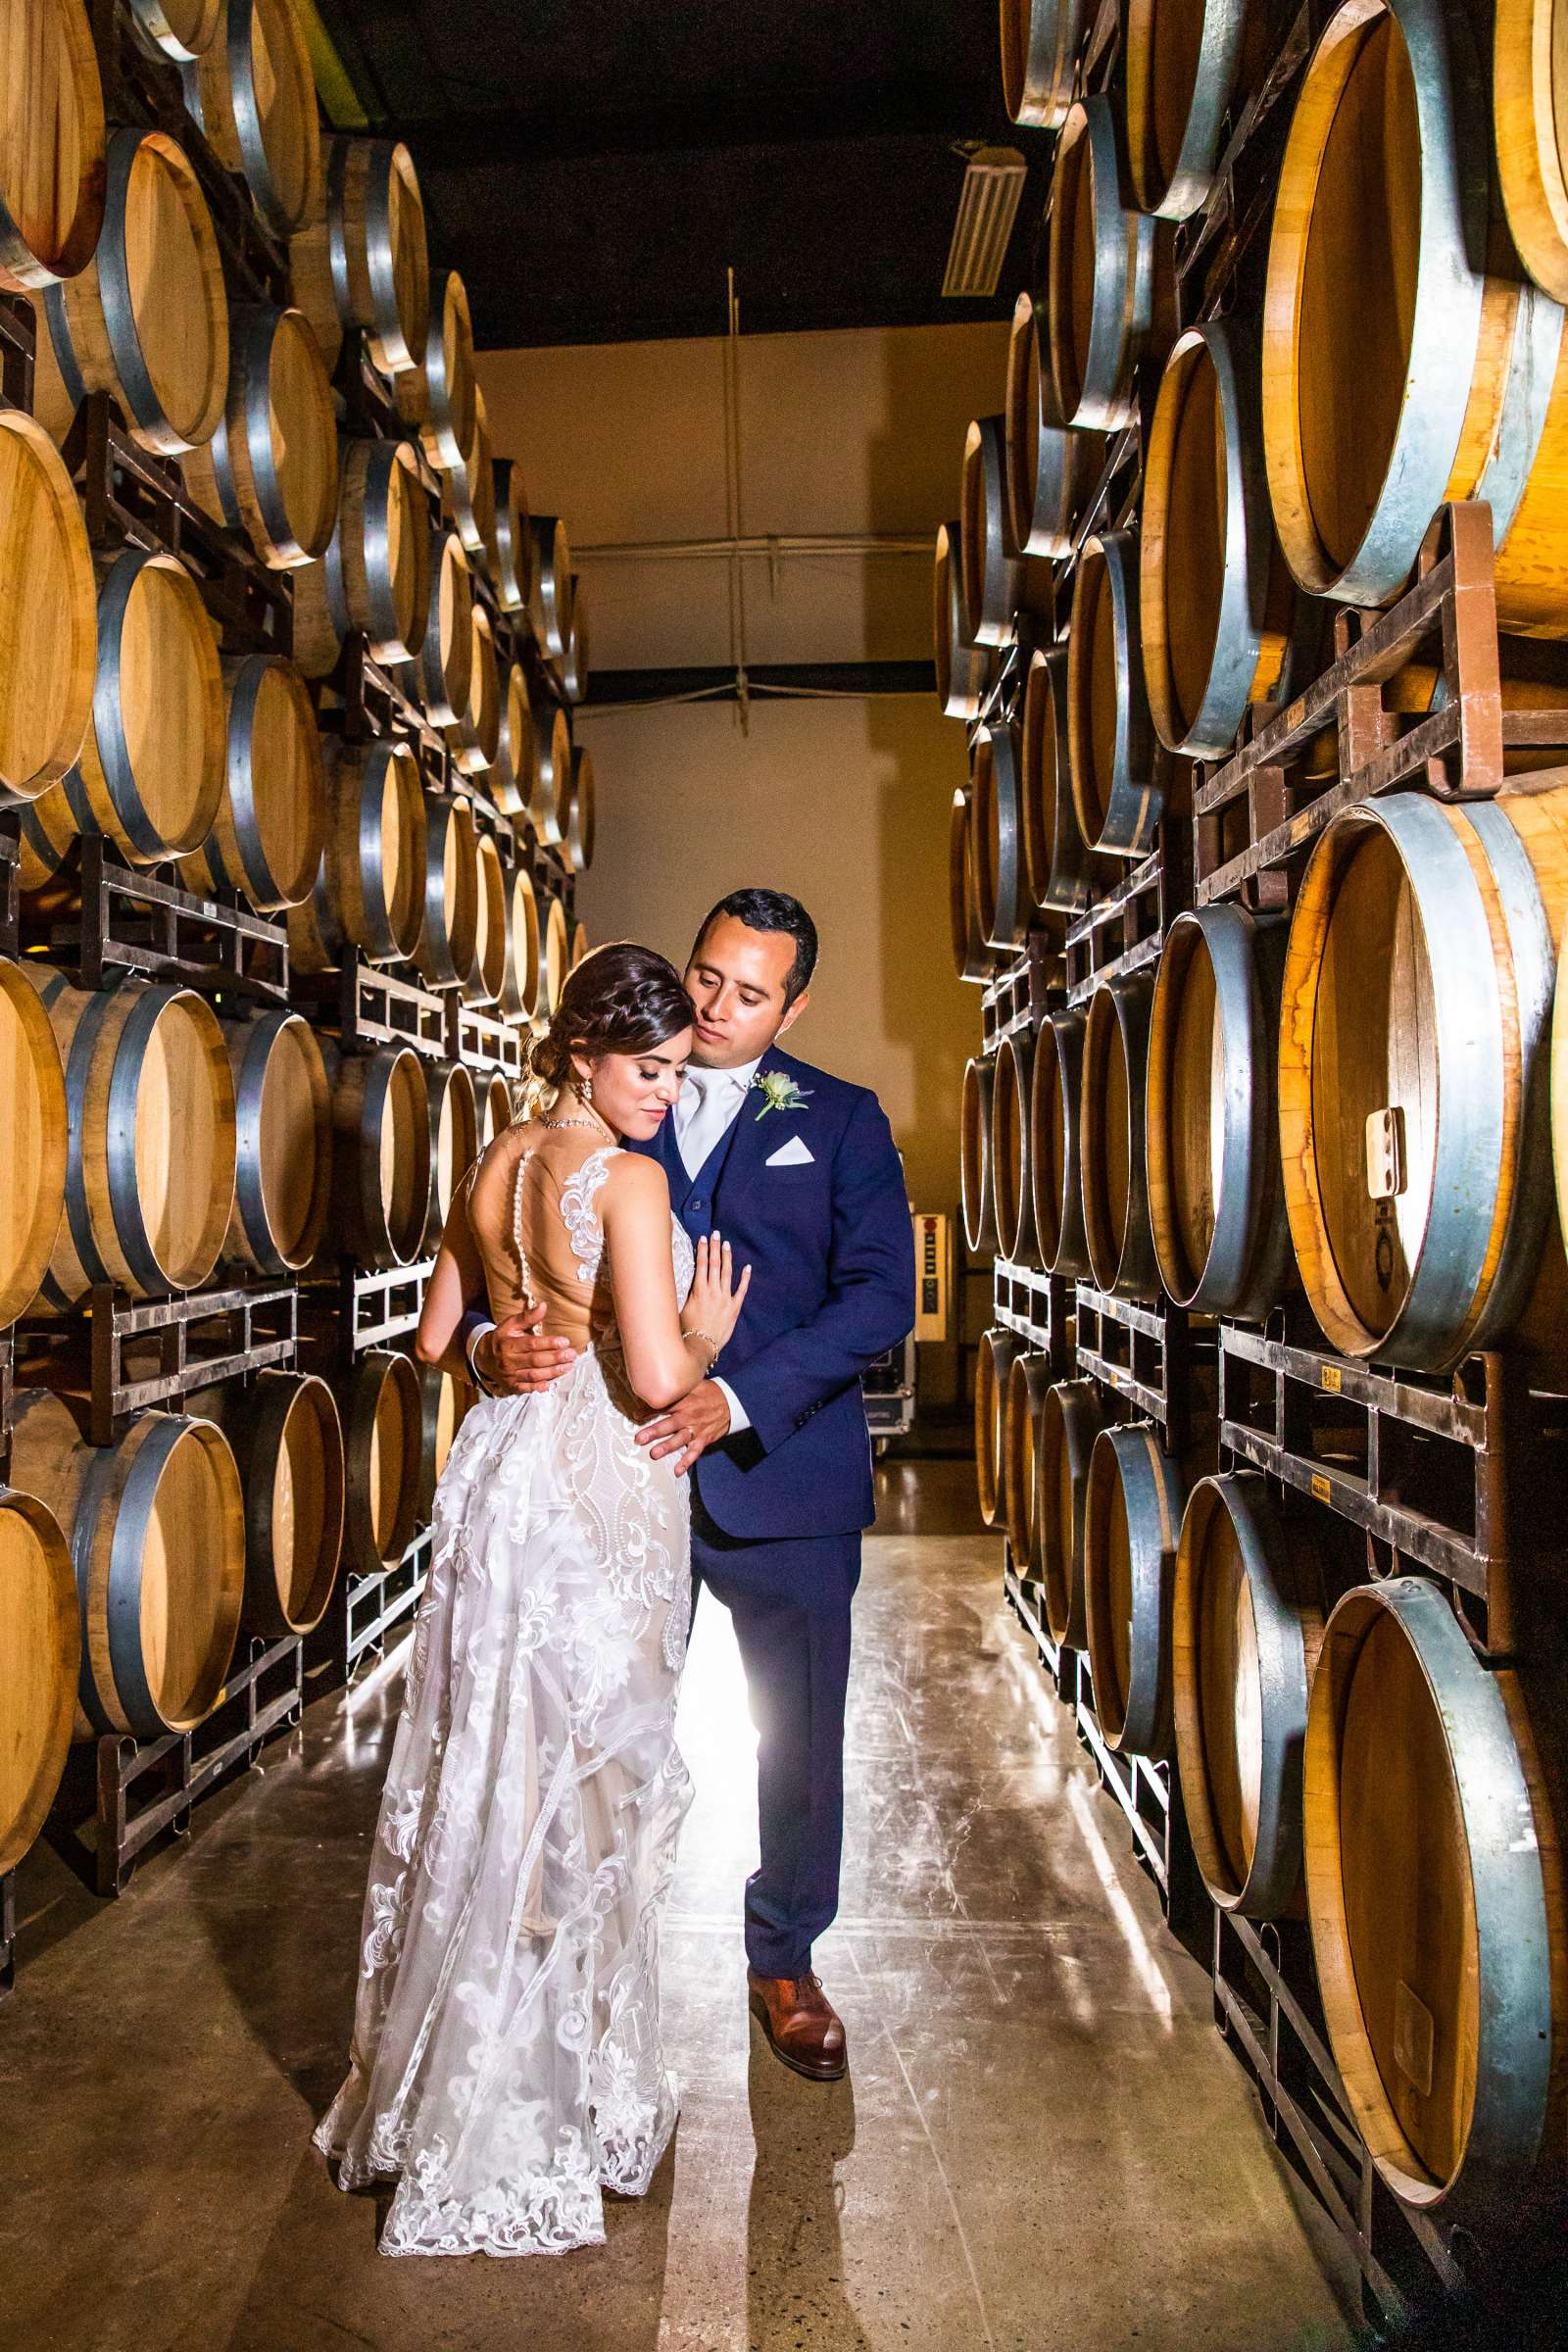 Winery at Callaway Vineyards & Winery Wedding coordinated by Michelle Garibay Events, Chelsea and Luis carlos Wedding Photo #30 by True Photography